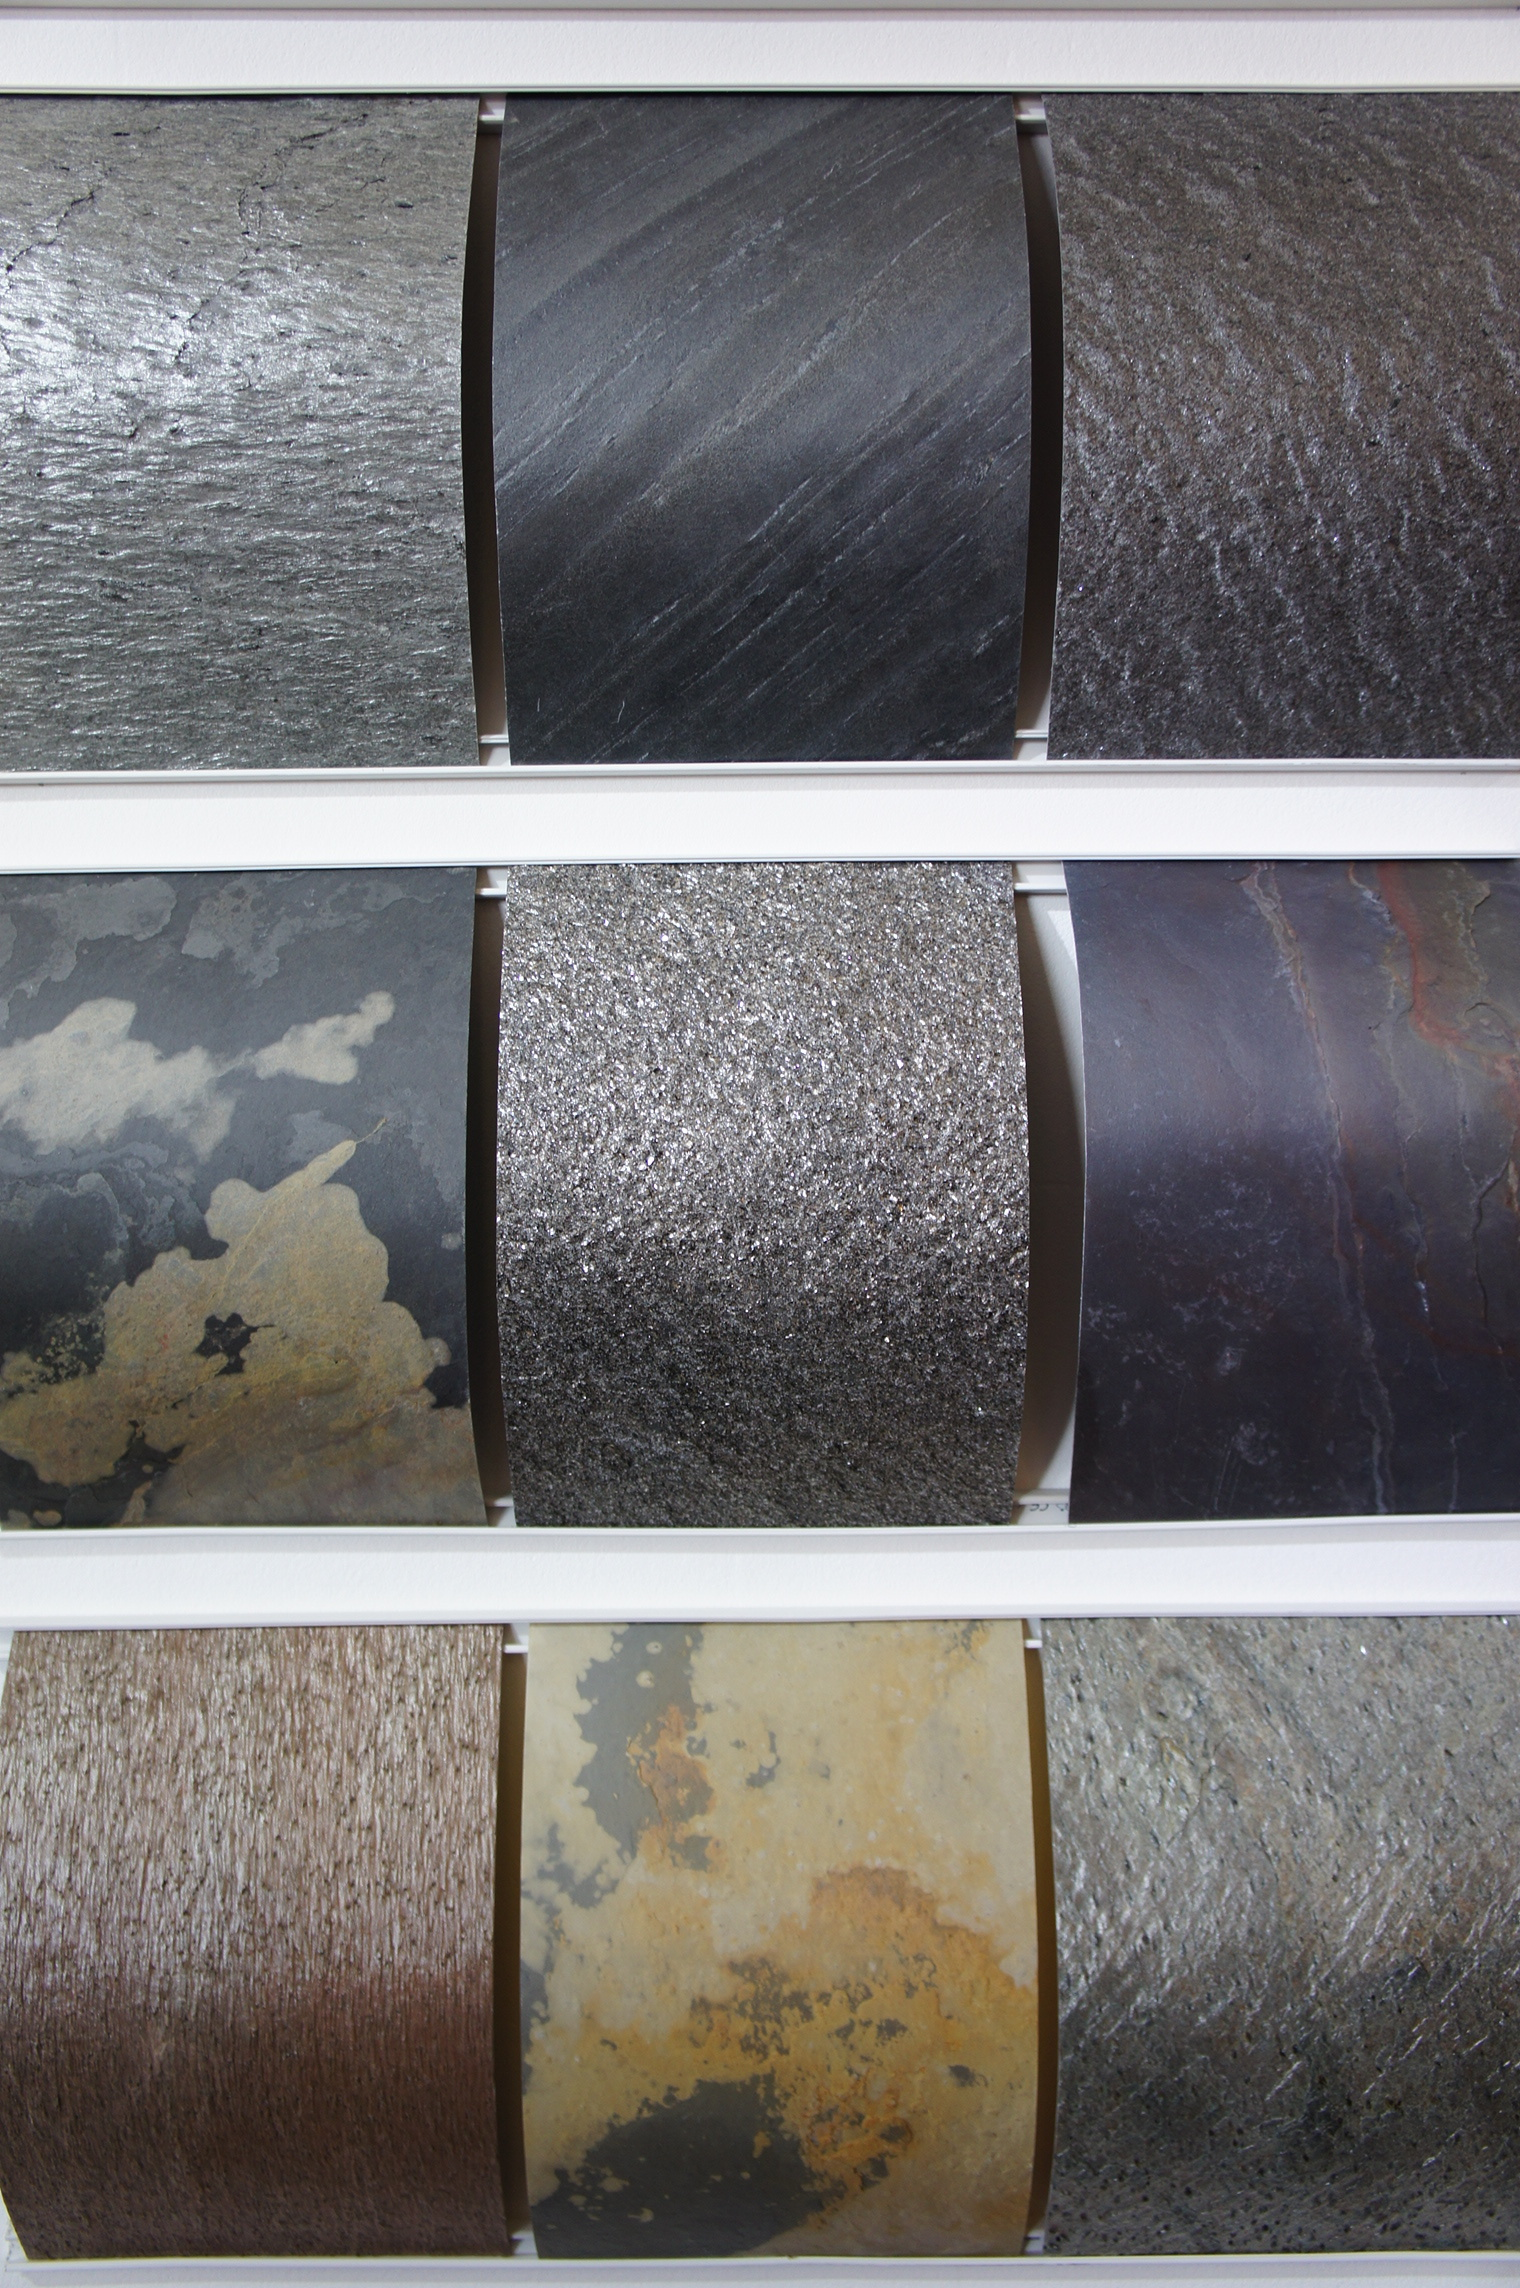 2mm stone veneers made by applying chemicals to different stones, making them pliable enough to strip off thin layers. Each sample shown here is the natural color of the stone, not painted. They are flexible just like wood veneers. The sales rep said their stone veneer is used by Bentley, however the Bentley website only mentioned a Mulliner brand.Flexi-Stone collection by  Mountskape